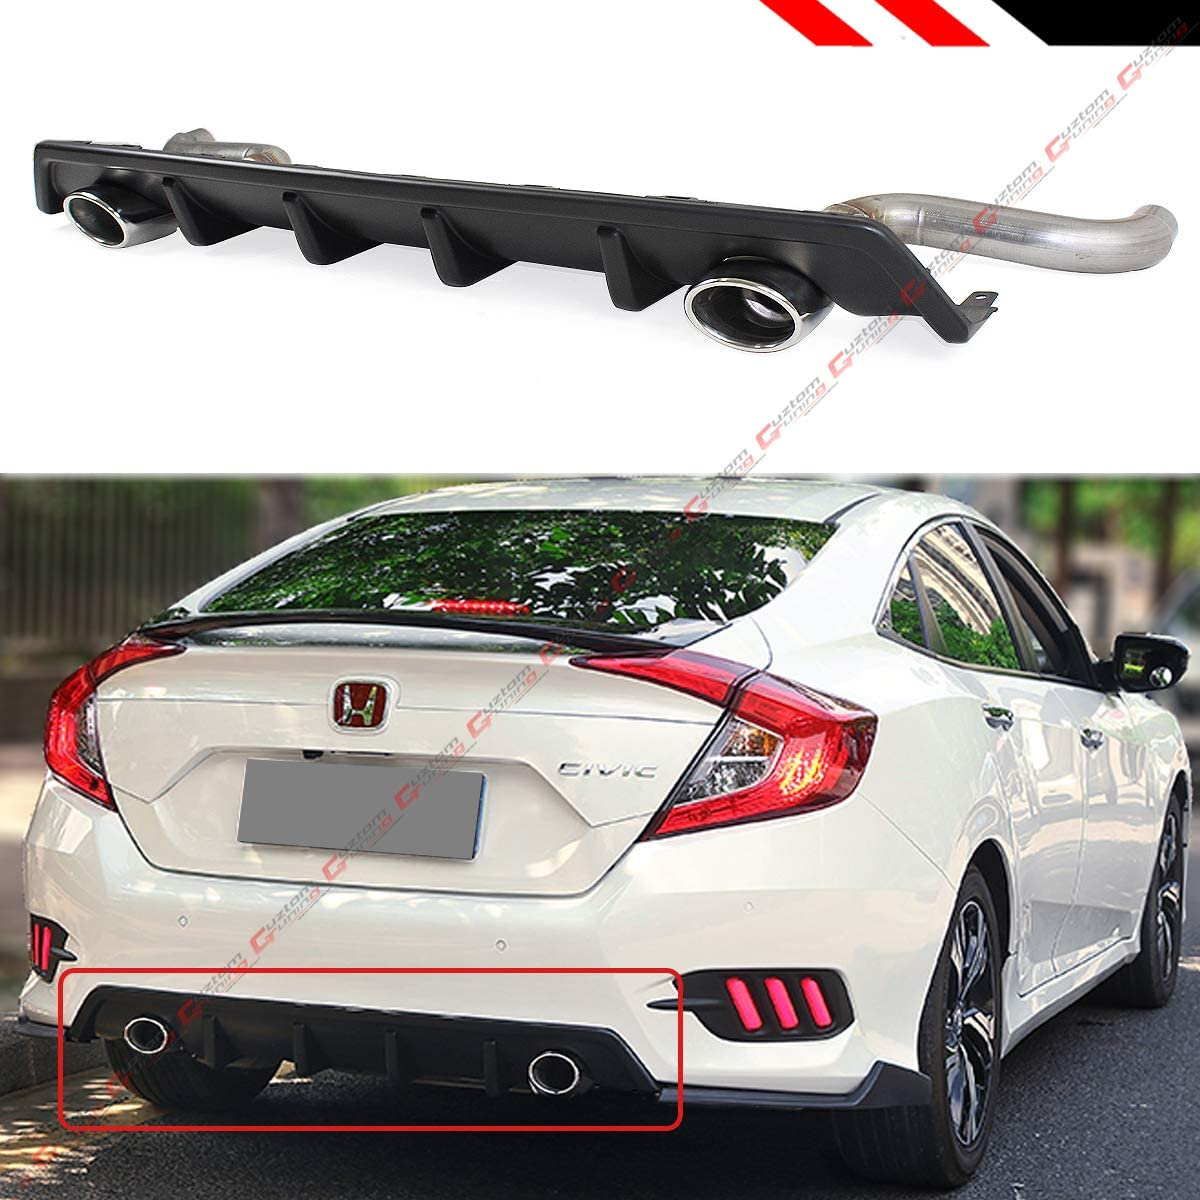 Fits for 2016-2018 Honda Civic 4 Door Dual Exhaust Shark Fin Rear Bumper Diffuser Axle Back Muffler Pipes